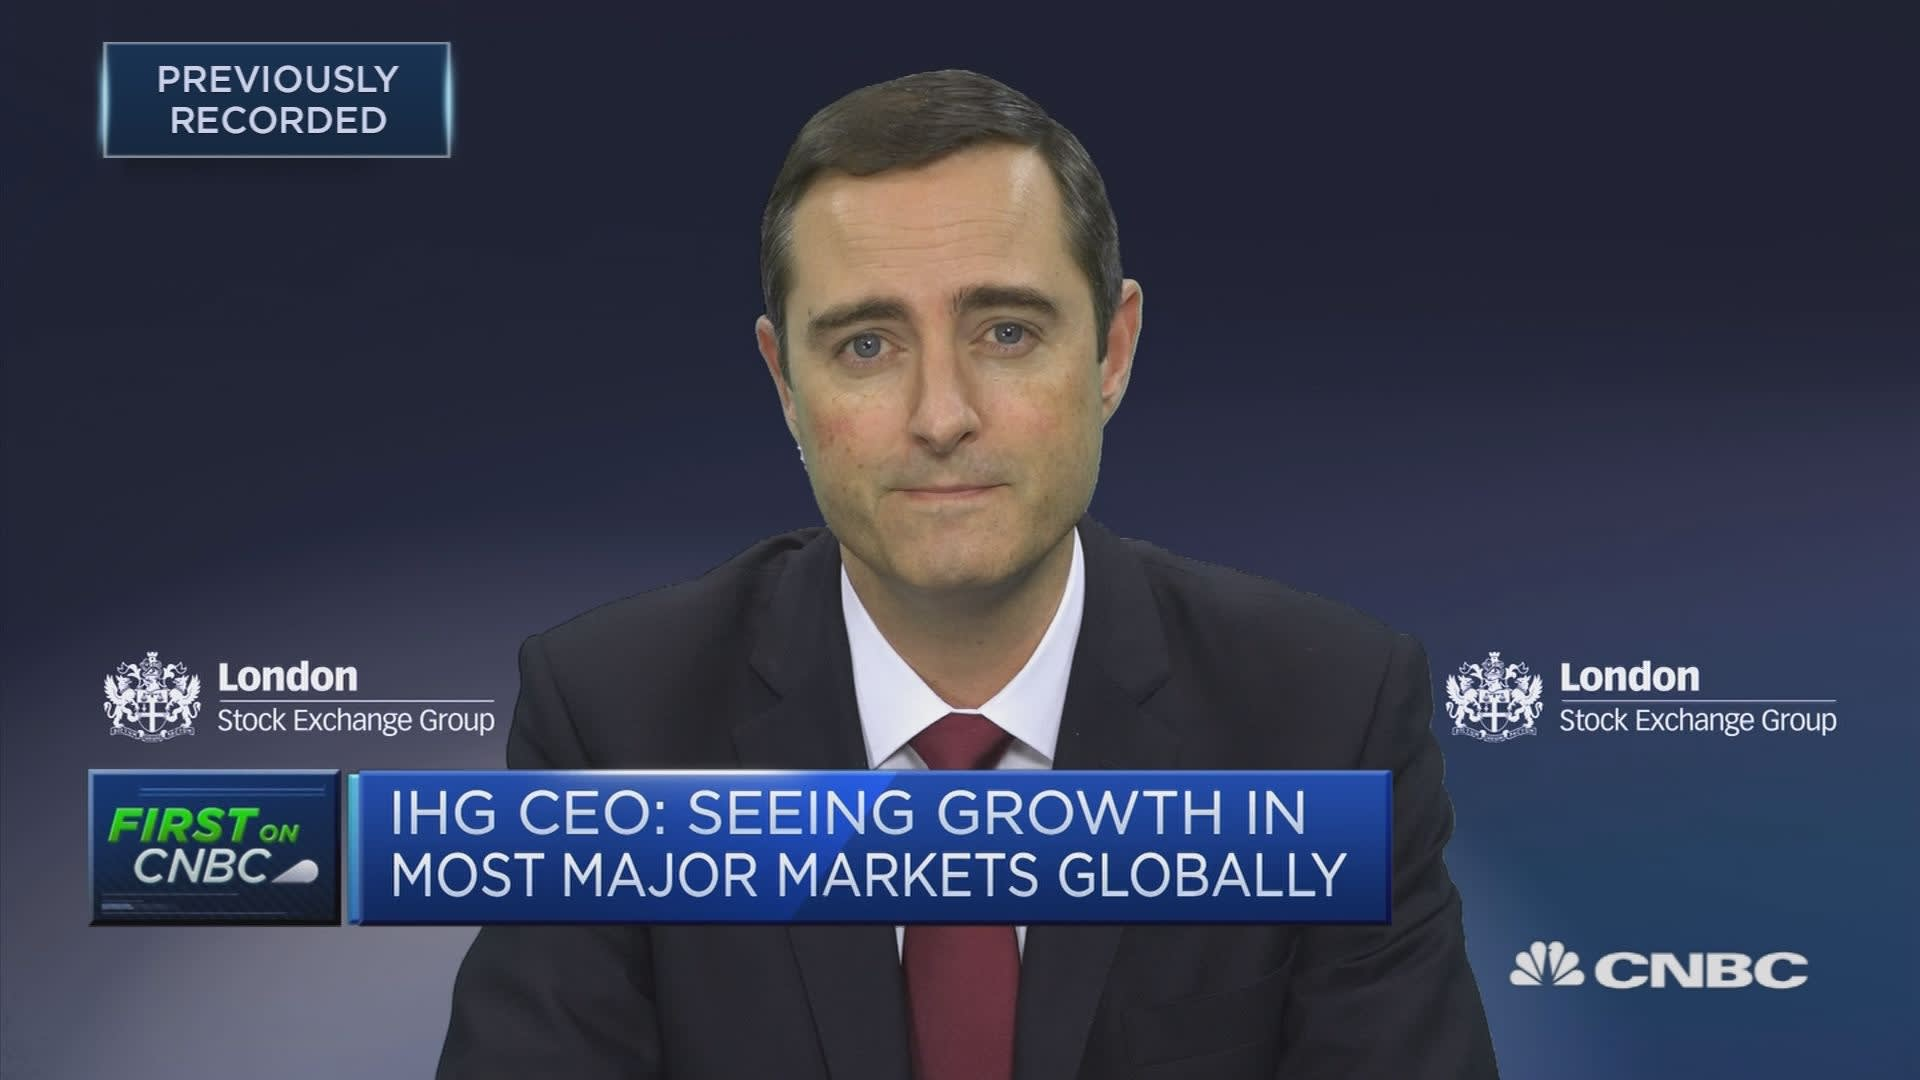 IHG CEO: Seeing growth in most major markets globally